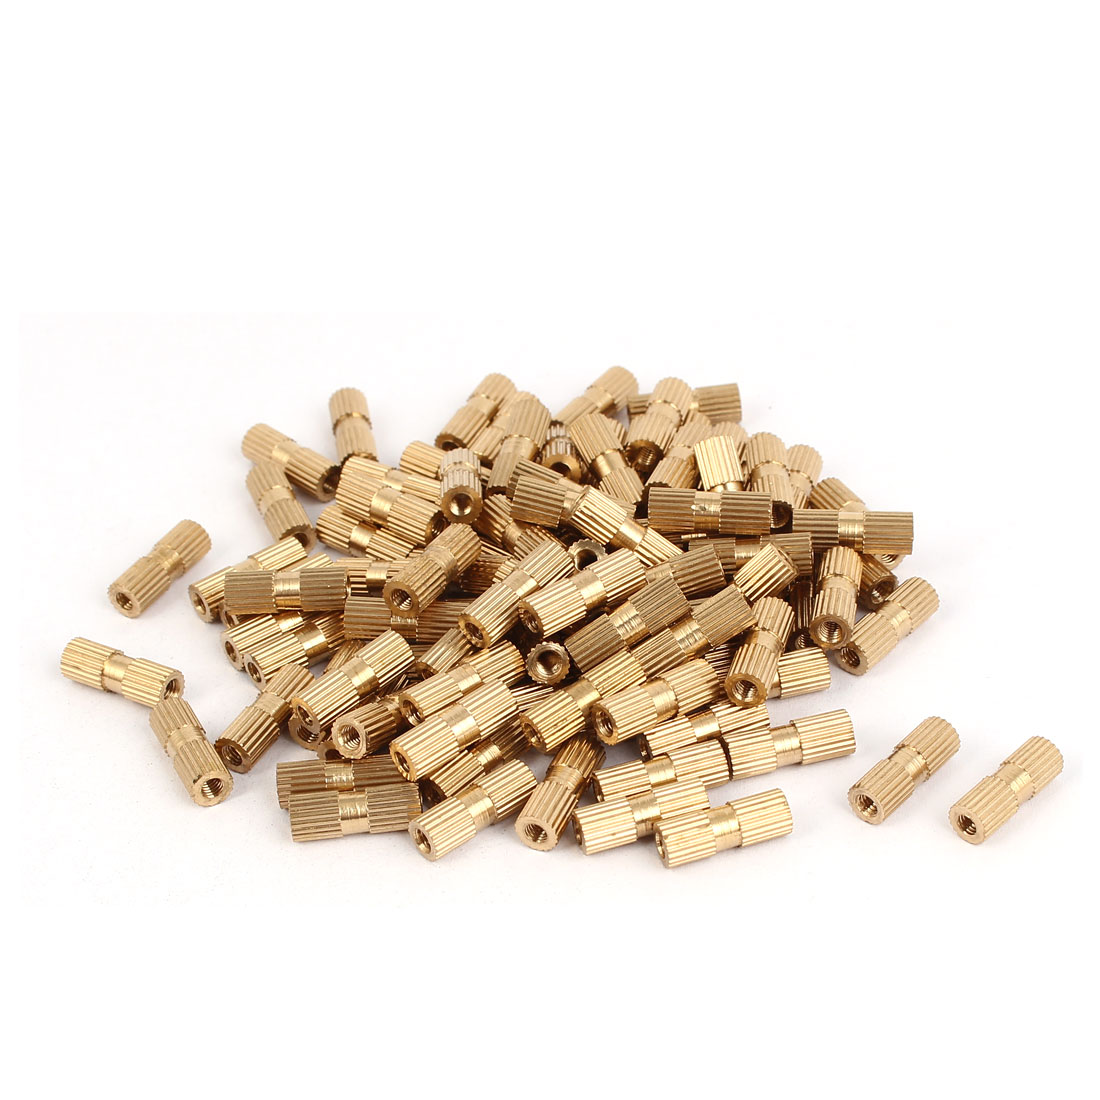 M3 x 15mm Brass Cylinder Knurled Threaded Round Insert Embedded Nuts 100PCS